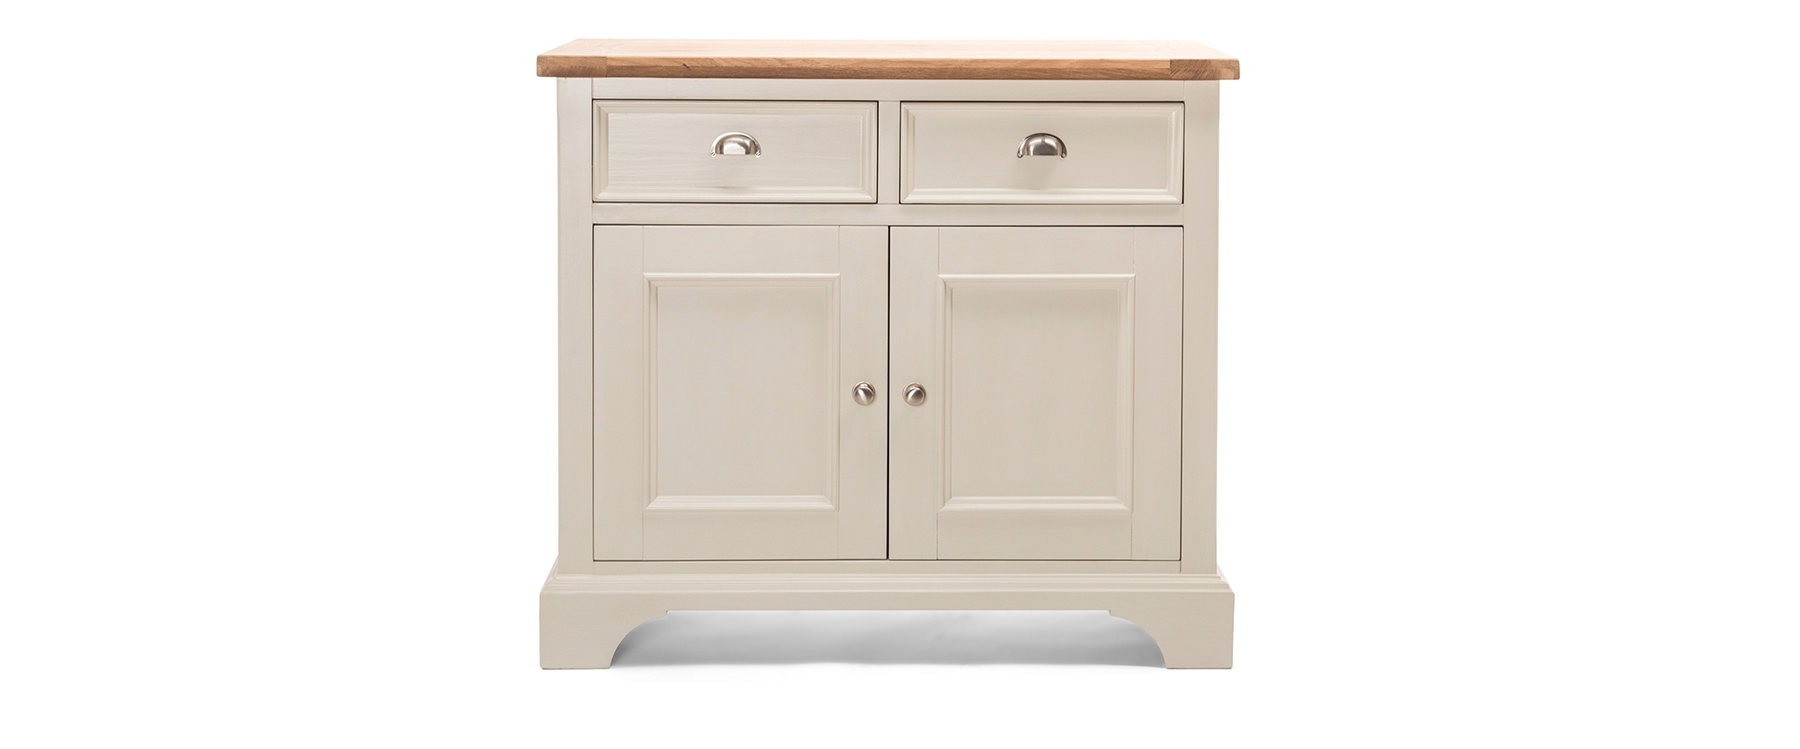 Cornwall Buffet 2 Doors & 2 Drawers | Ez Living Furniture Northern For 4 Door 3 Drawer White Wash Sideboards (View 13 of 30)